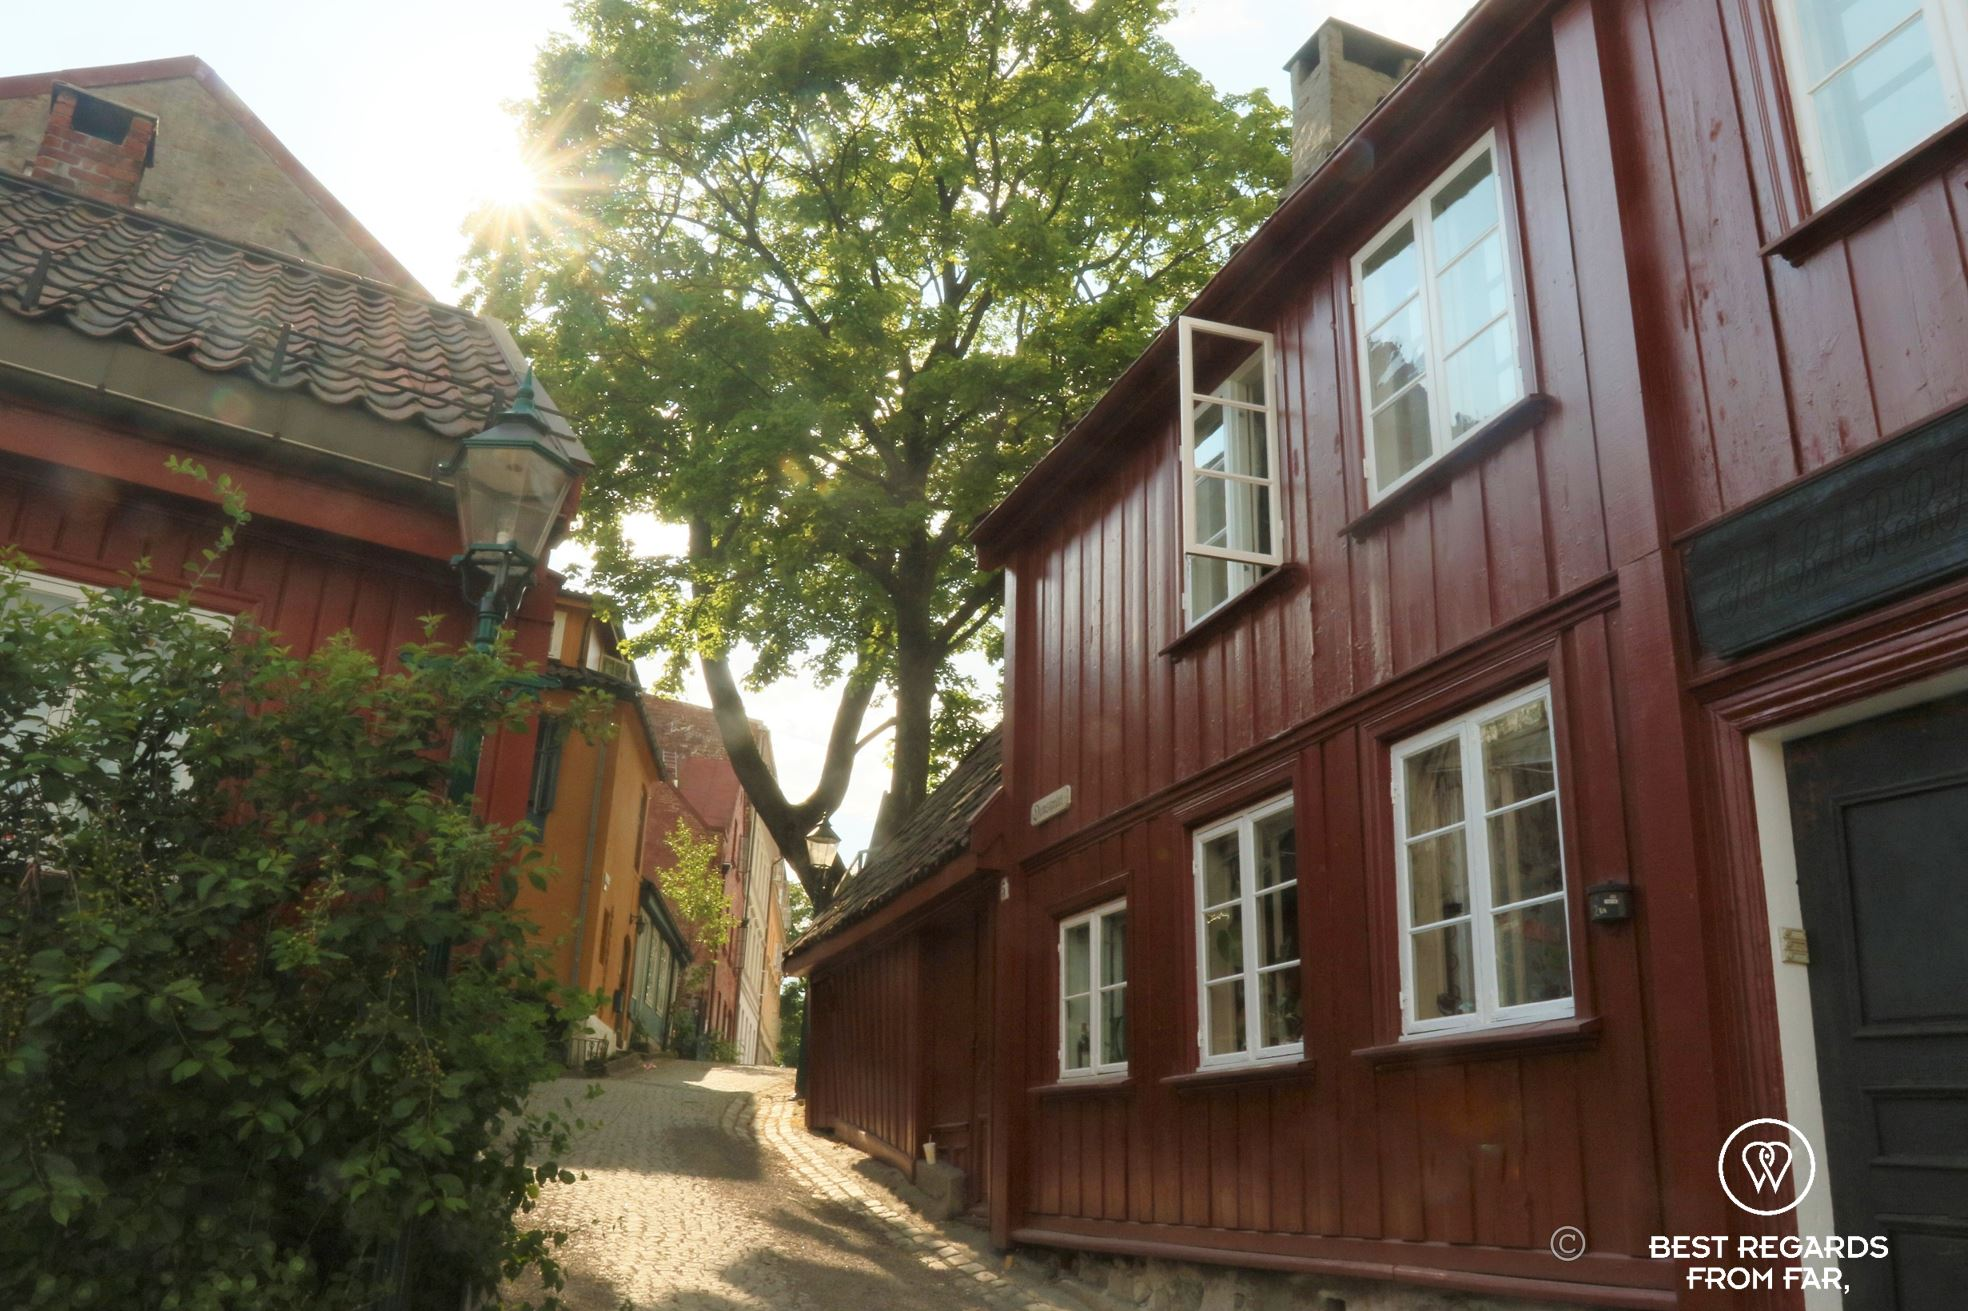 Red wooden house with white window frames along a cobble-stoned street, sun piercing through the leafs of a tree, Oslo, Norway.